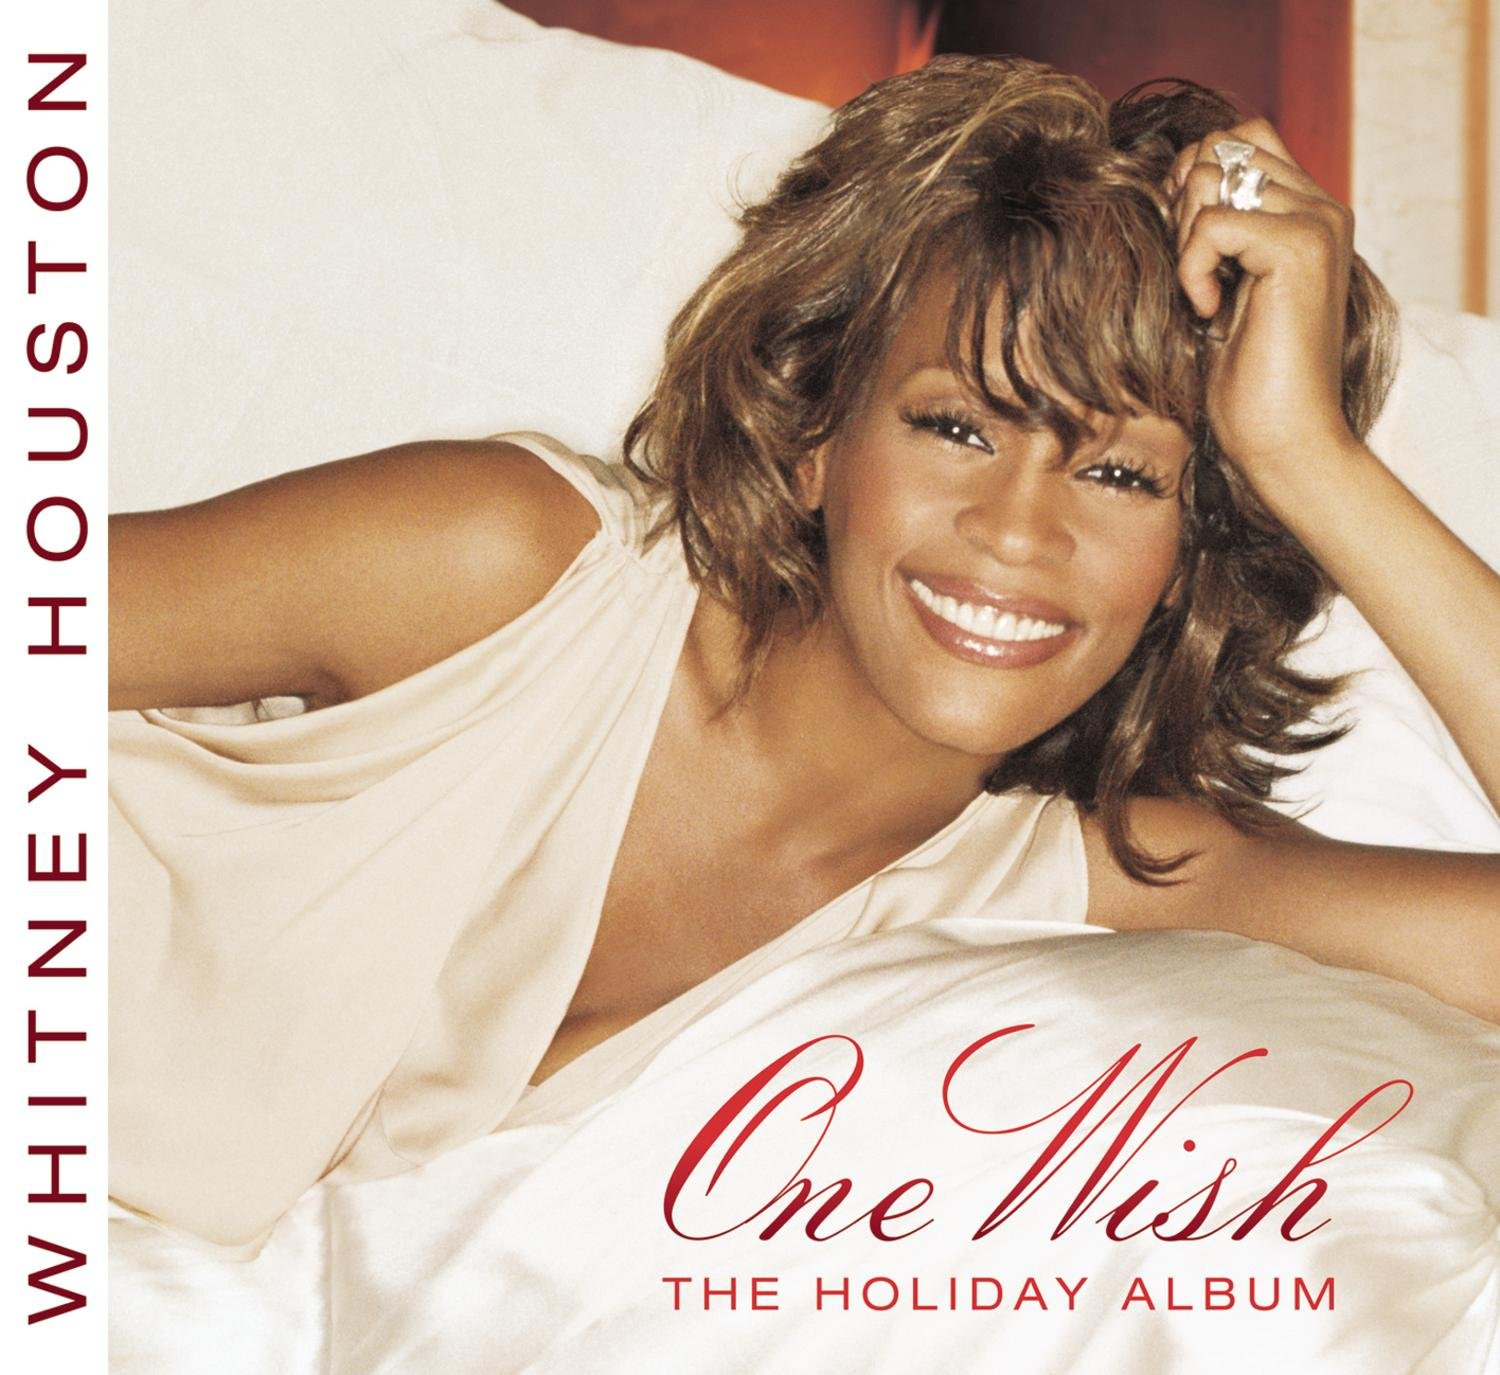 Whitney Houston - One Wish: The Holiday Album - Amazon.com Music